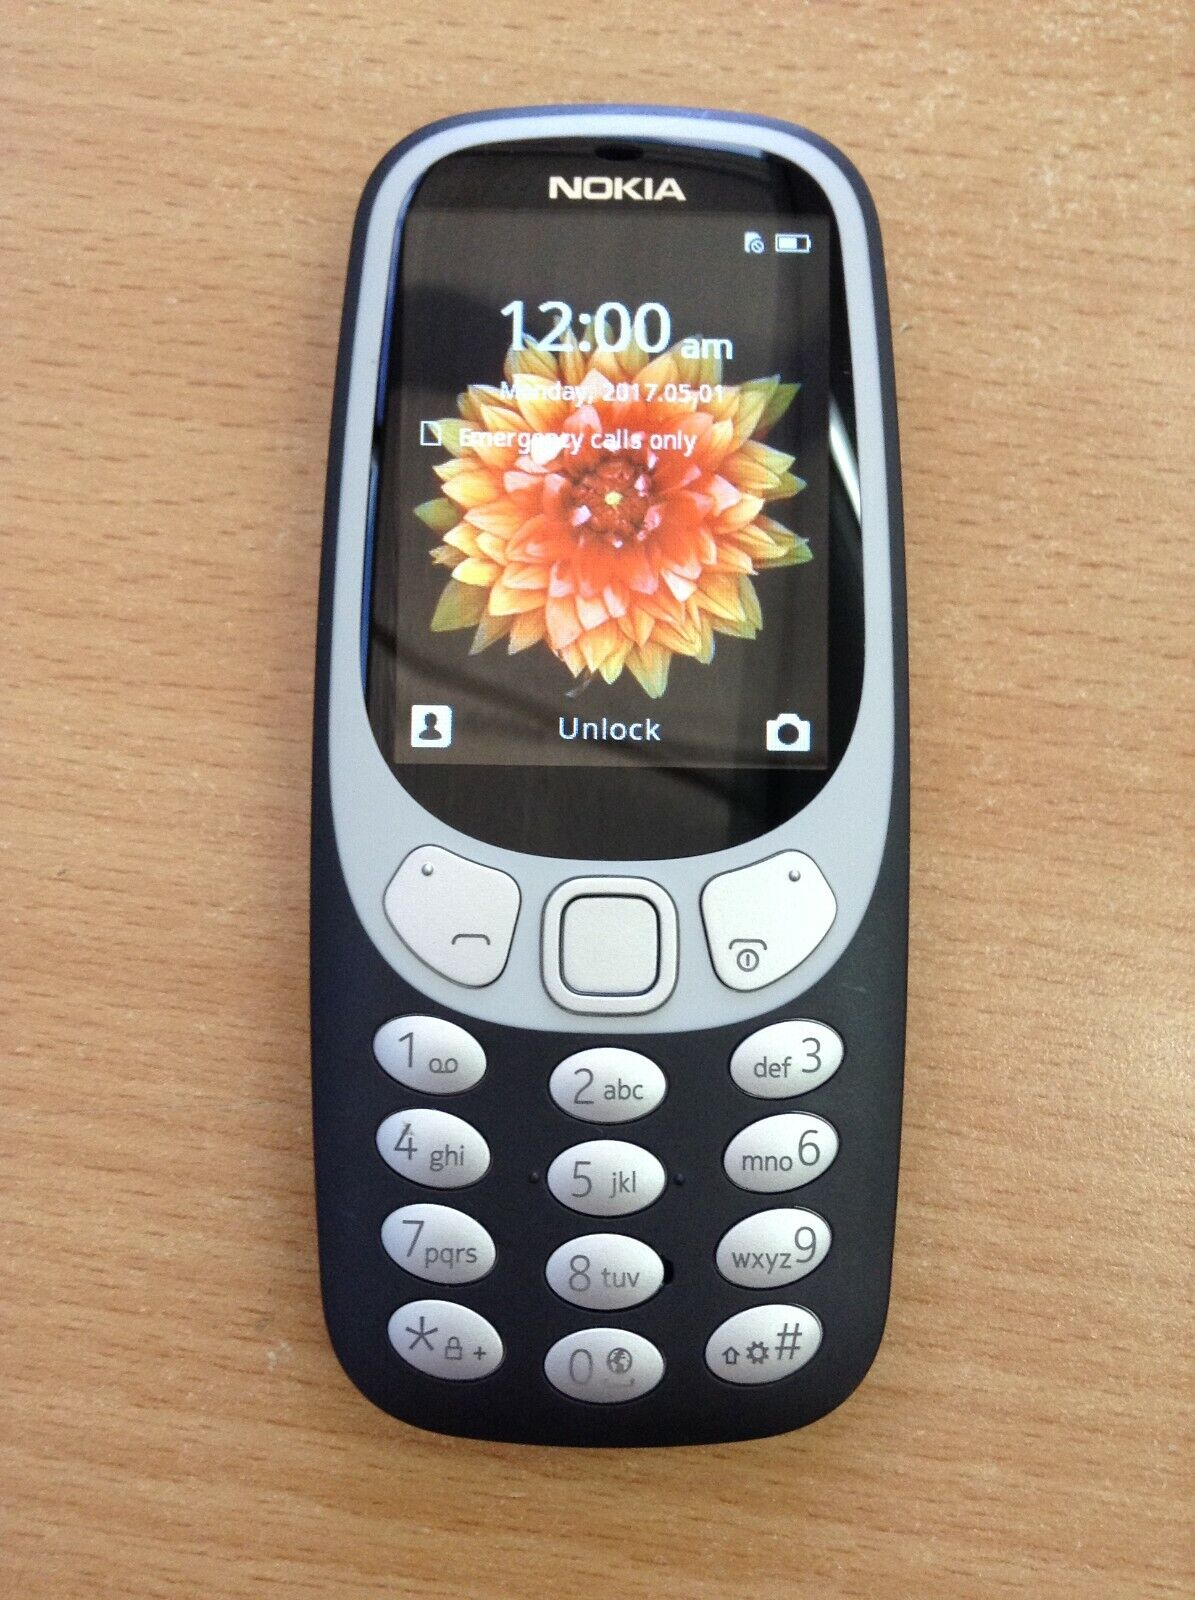 Android Phone - Nokia 3310 3G Phone TA-1036 64MB UNLOCKED Black #Stratches